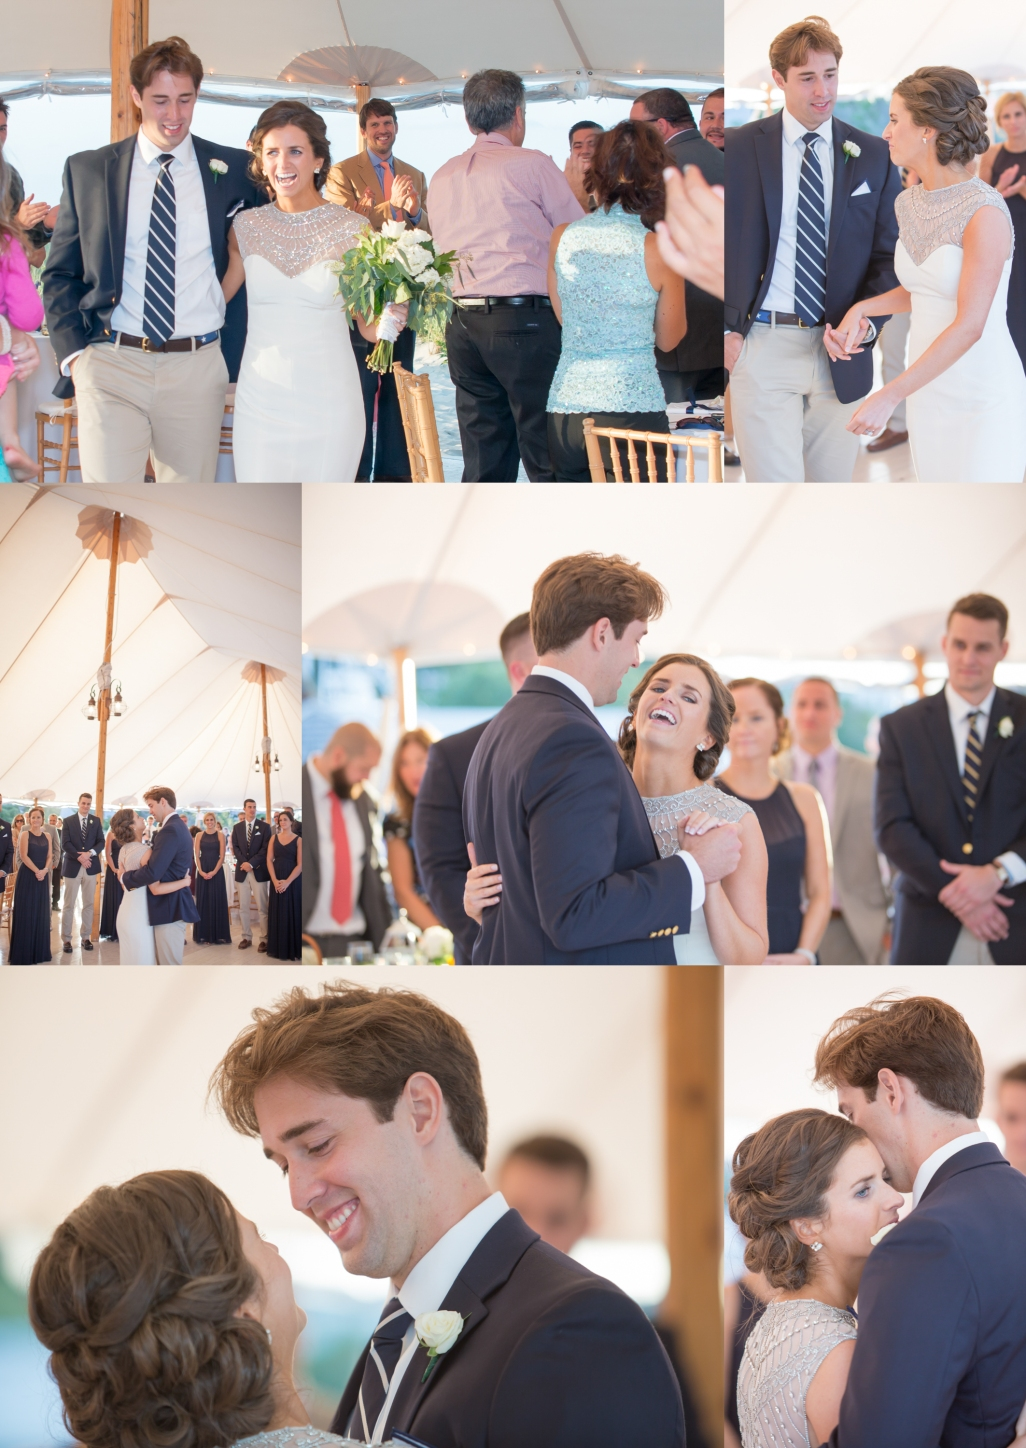 cape-cod-wedding-photographer-lisa-elizabeth-images-9-of-19